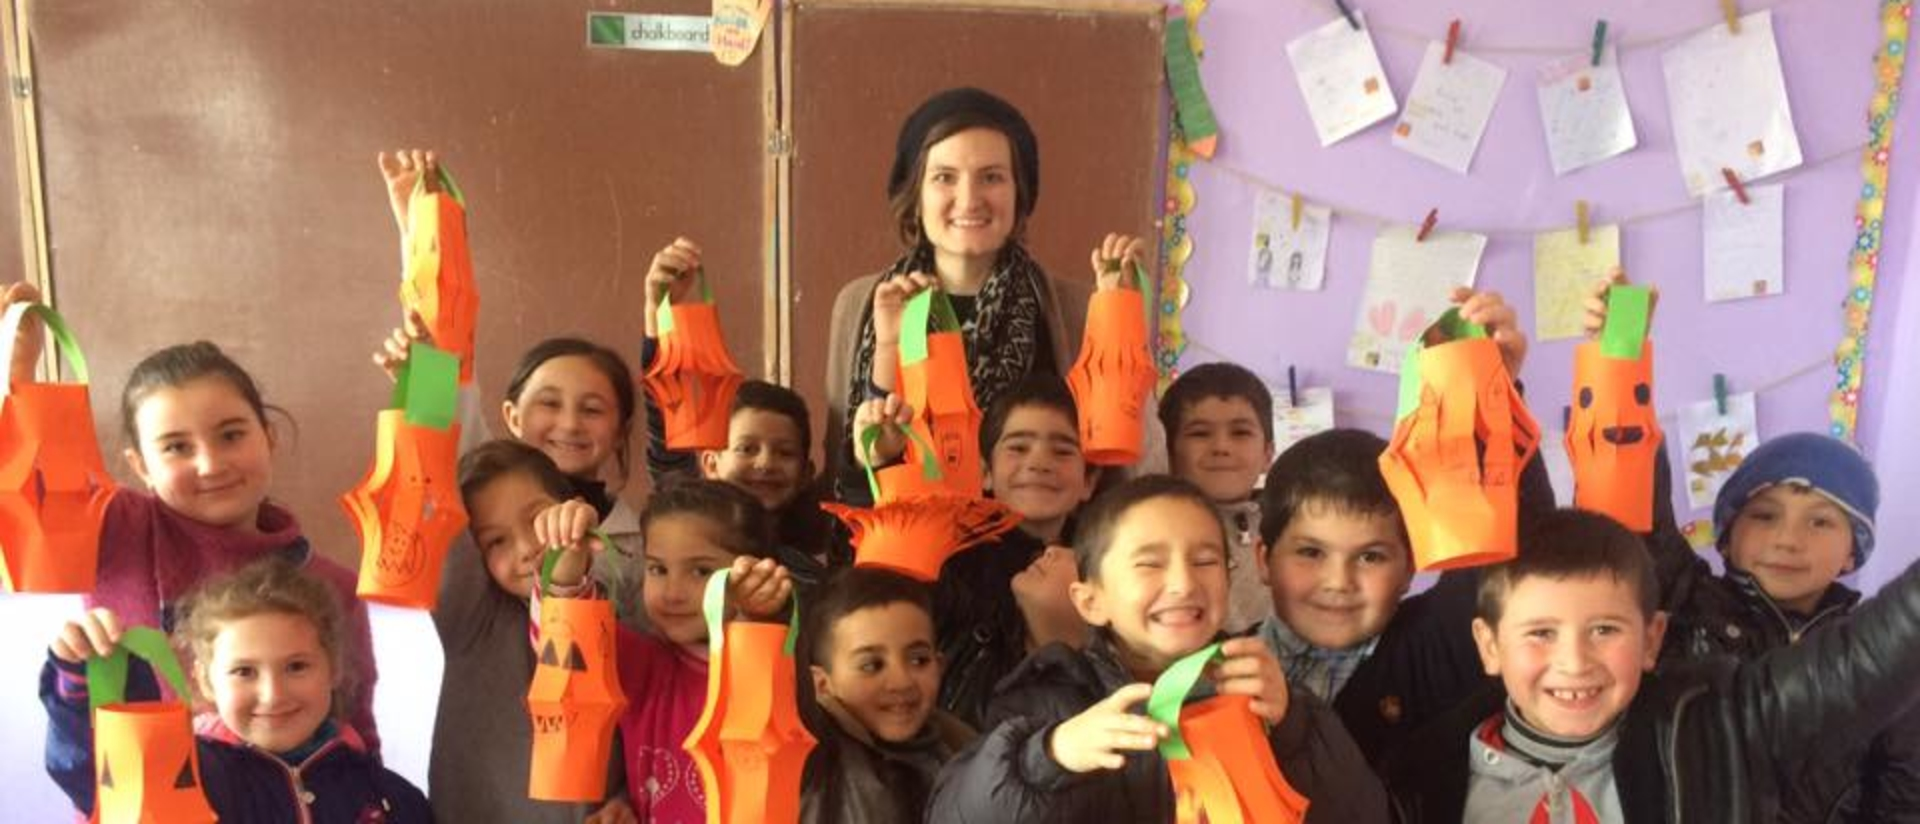 Courtney Ostert celebrating Halloween with students in the Republic of Georgia.